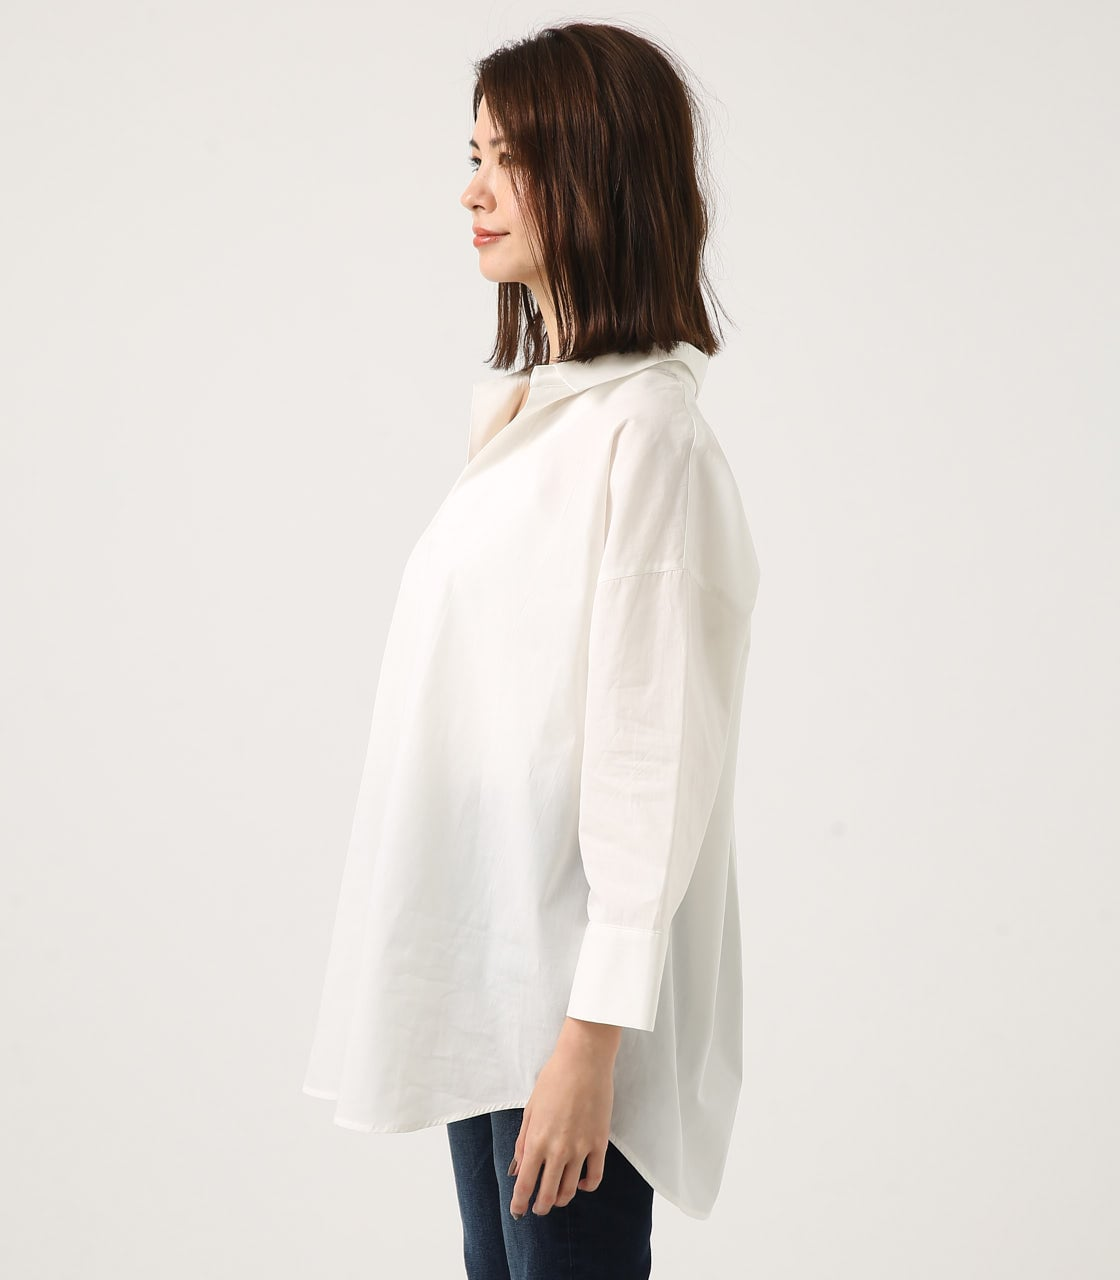 【AZUL BY MOUSSY】LOOSE SKIPPER SHIRT 詳細画像 O/WHT 5